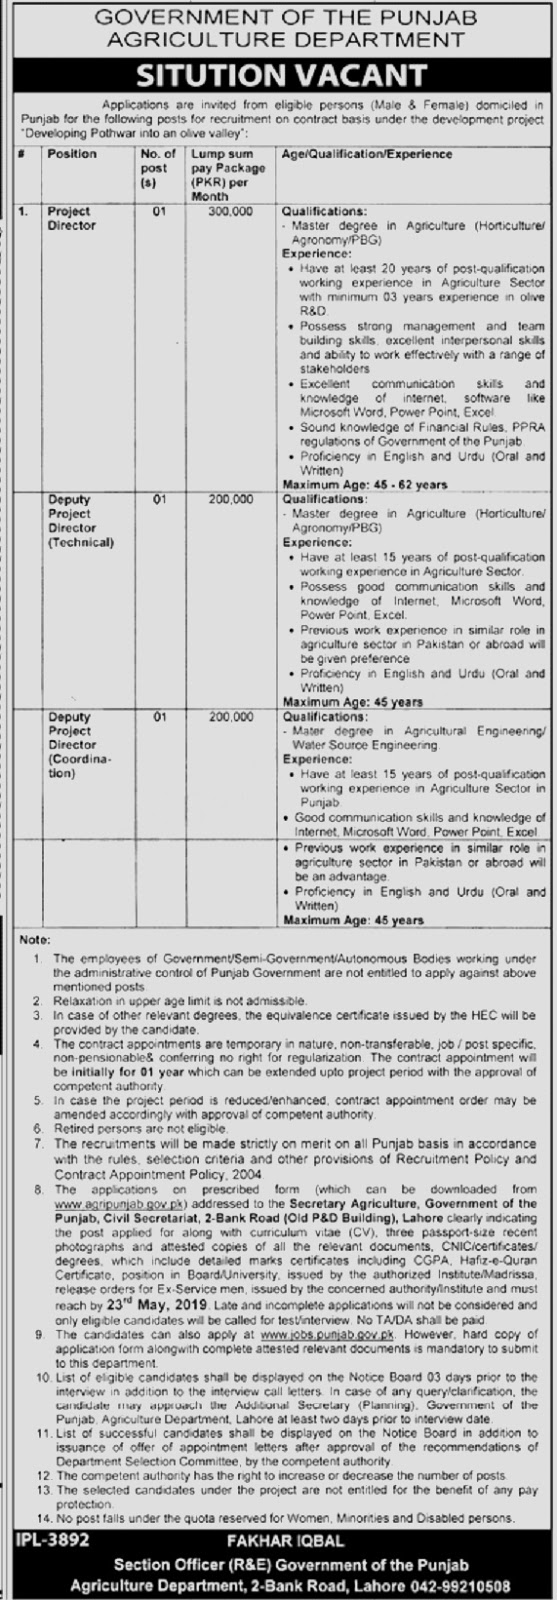 Jobs In Agriculture Department Govt Of Pakistan-Salary 300000 Rs Per